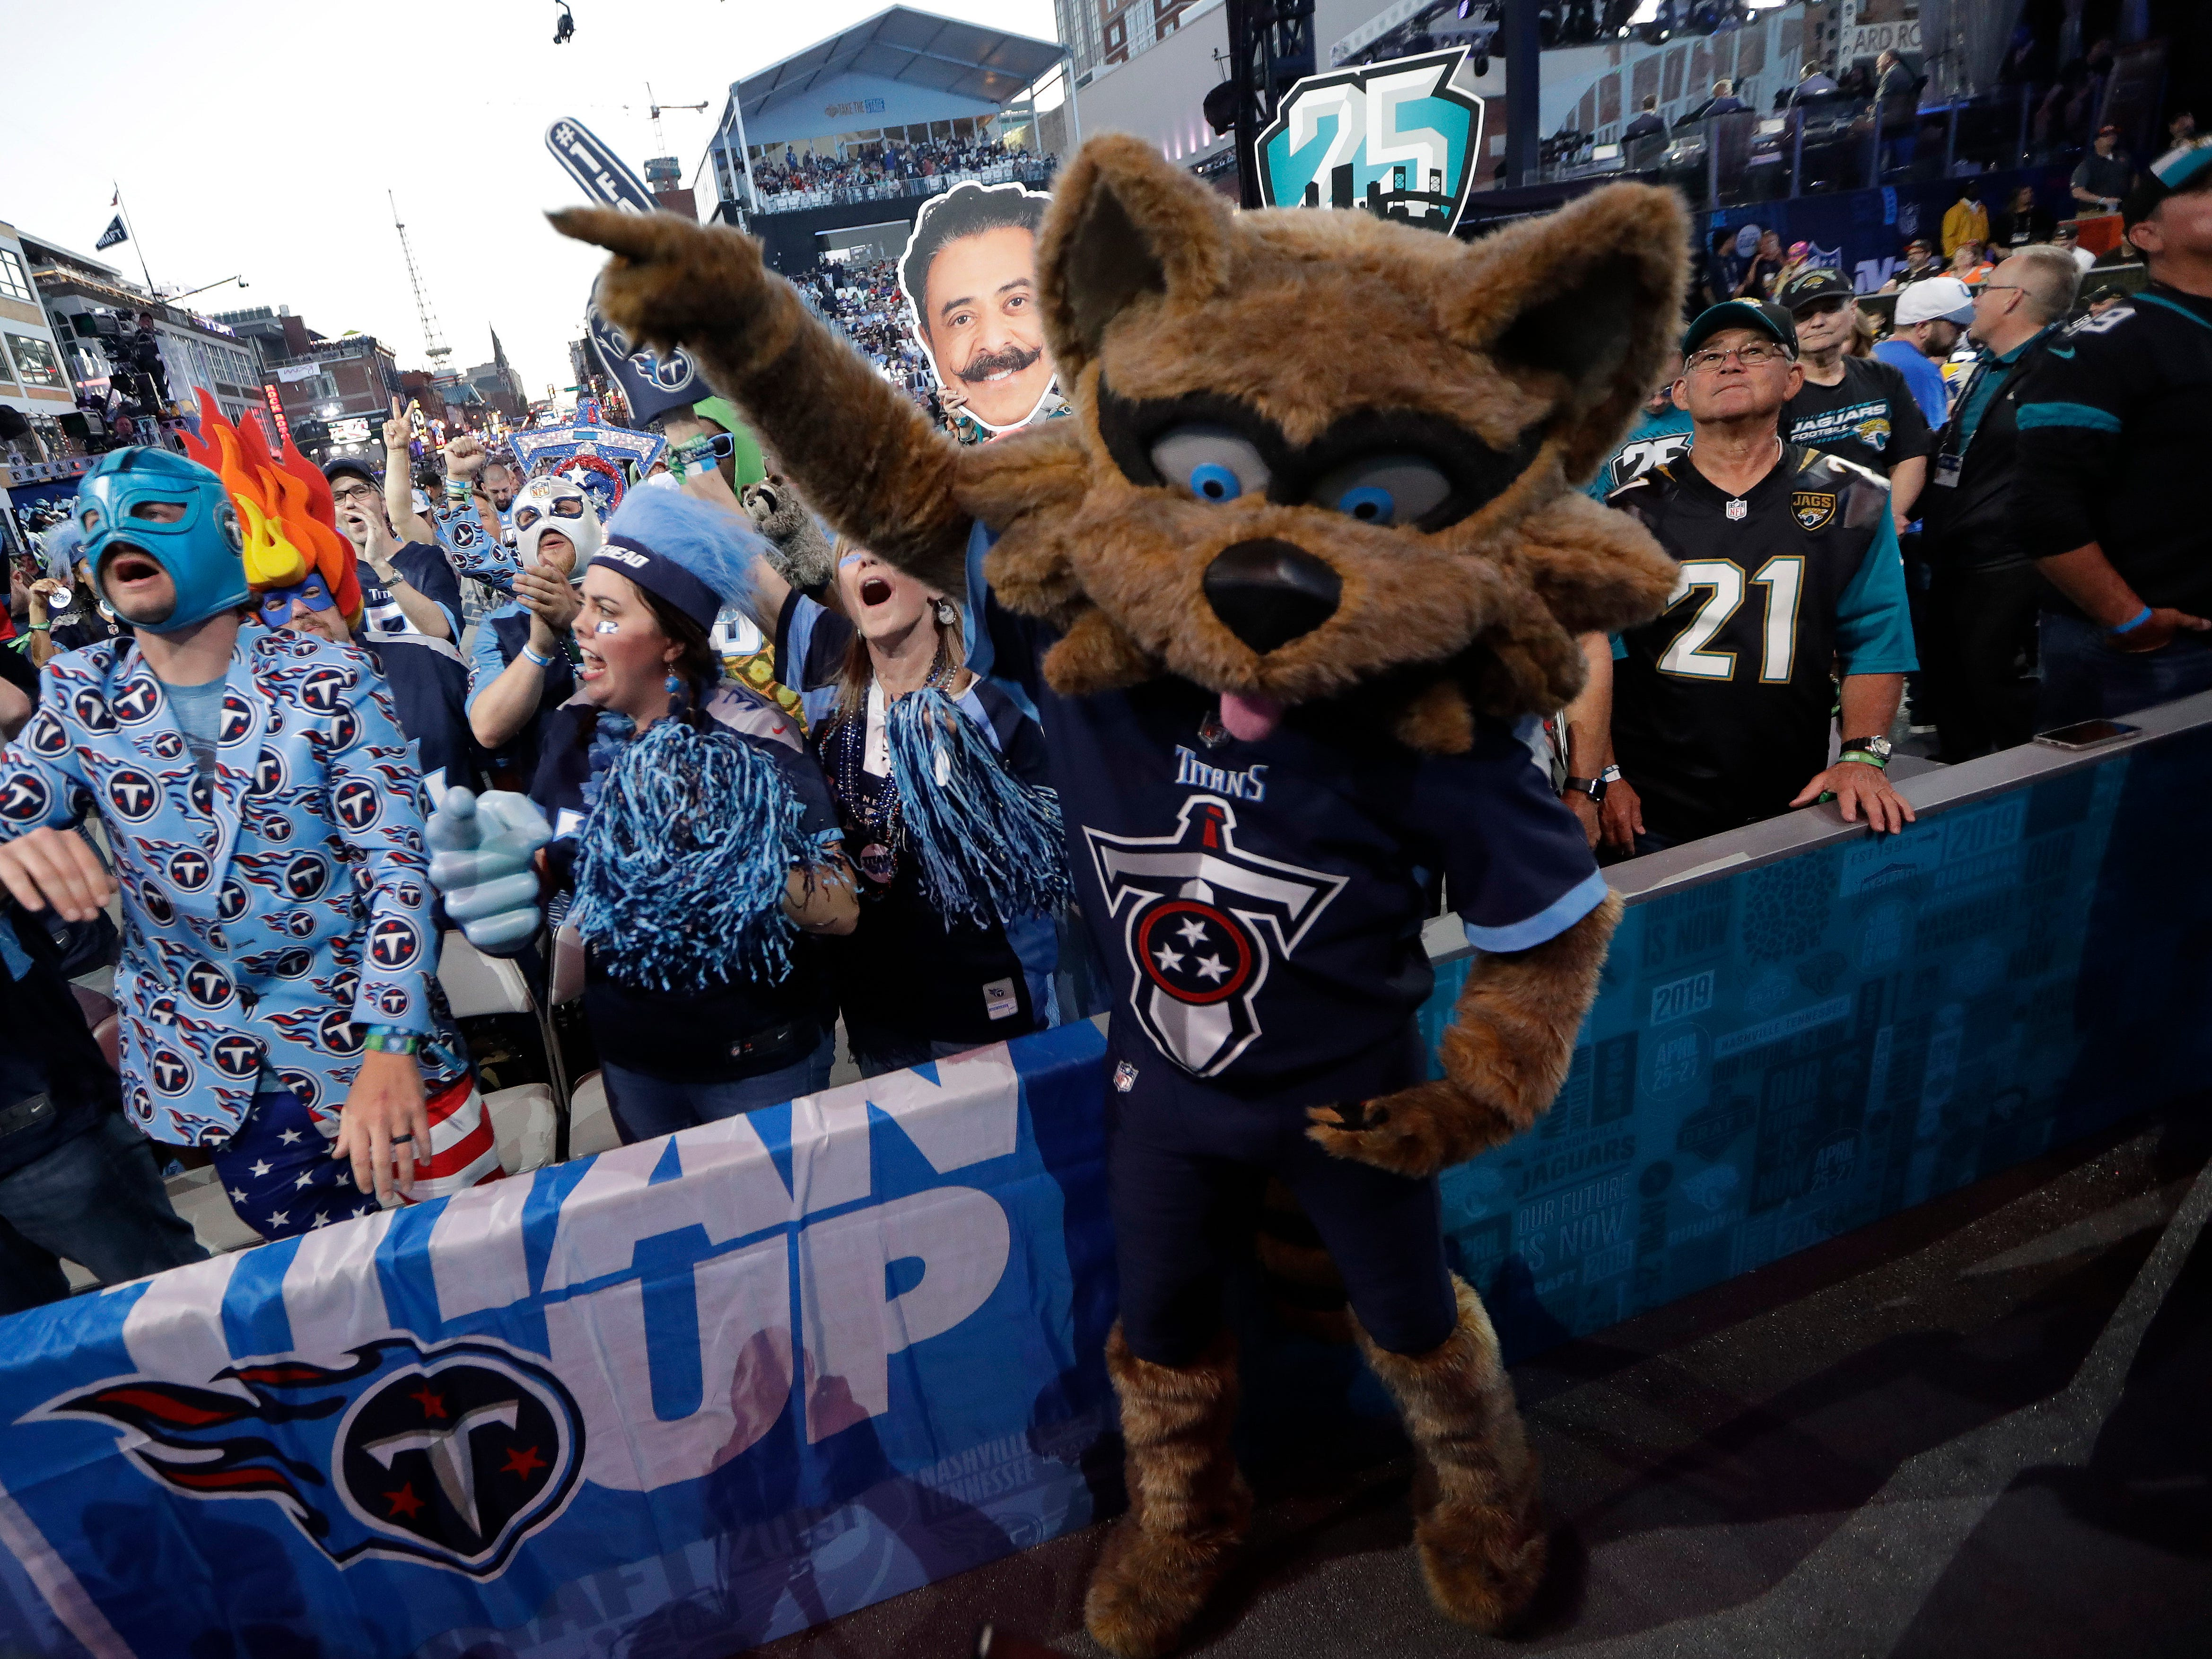 Tennessee Titans mascot cheers with fans near the main stage during the second round of the draft.